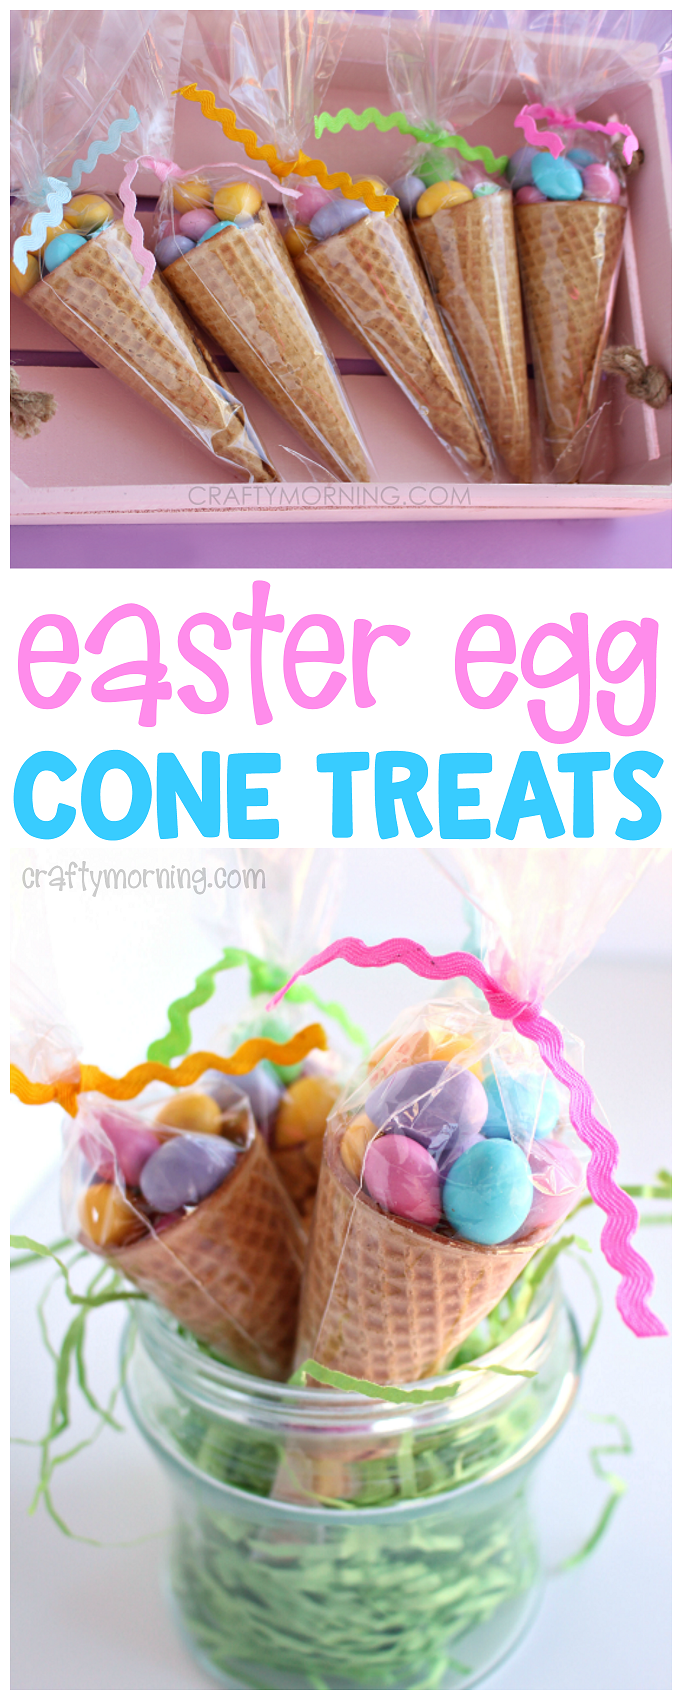 These edible easter egg cone treats are adorable cute little these edible easter egg cone treats are adorable cute little easter gift idea for negle Choice Image